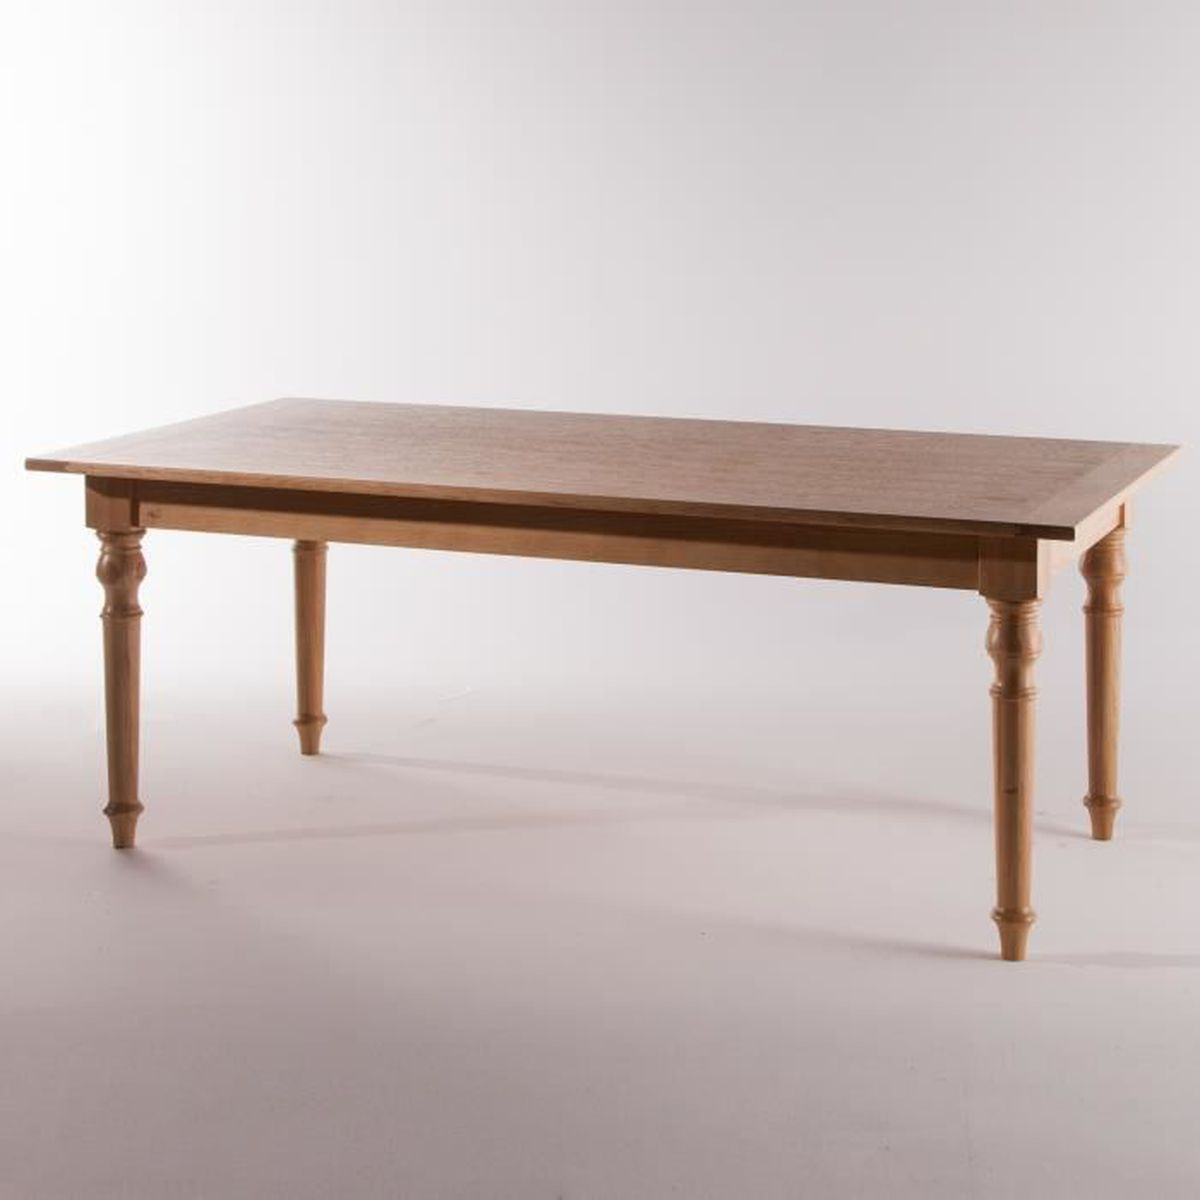 Table manger rectangulaire en ch ne massif long 200 cm for Table a manger rectangulaire